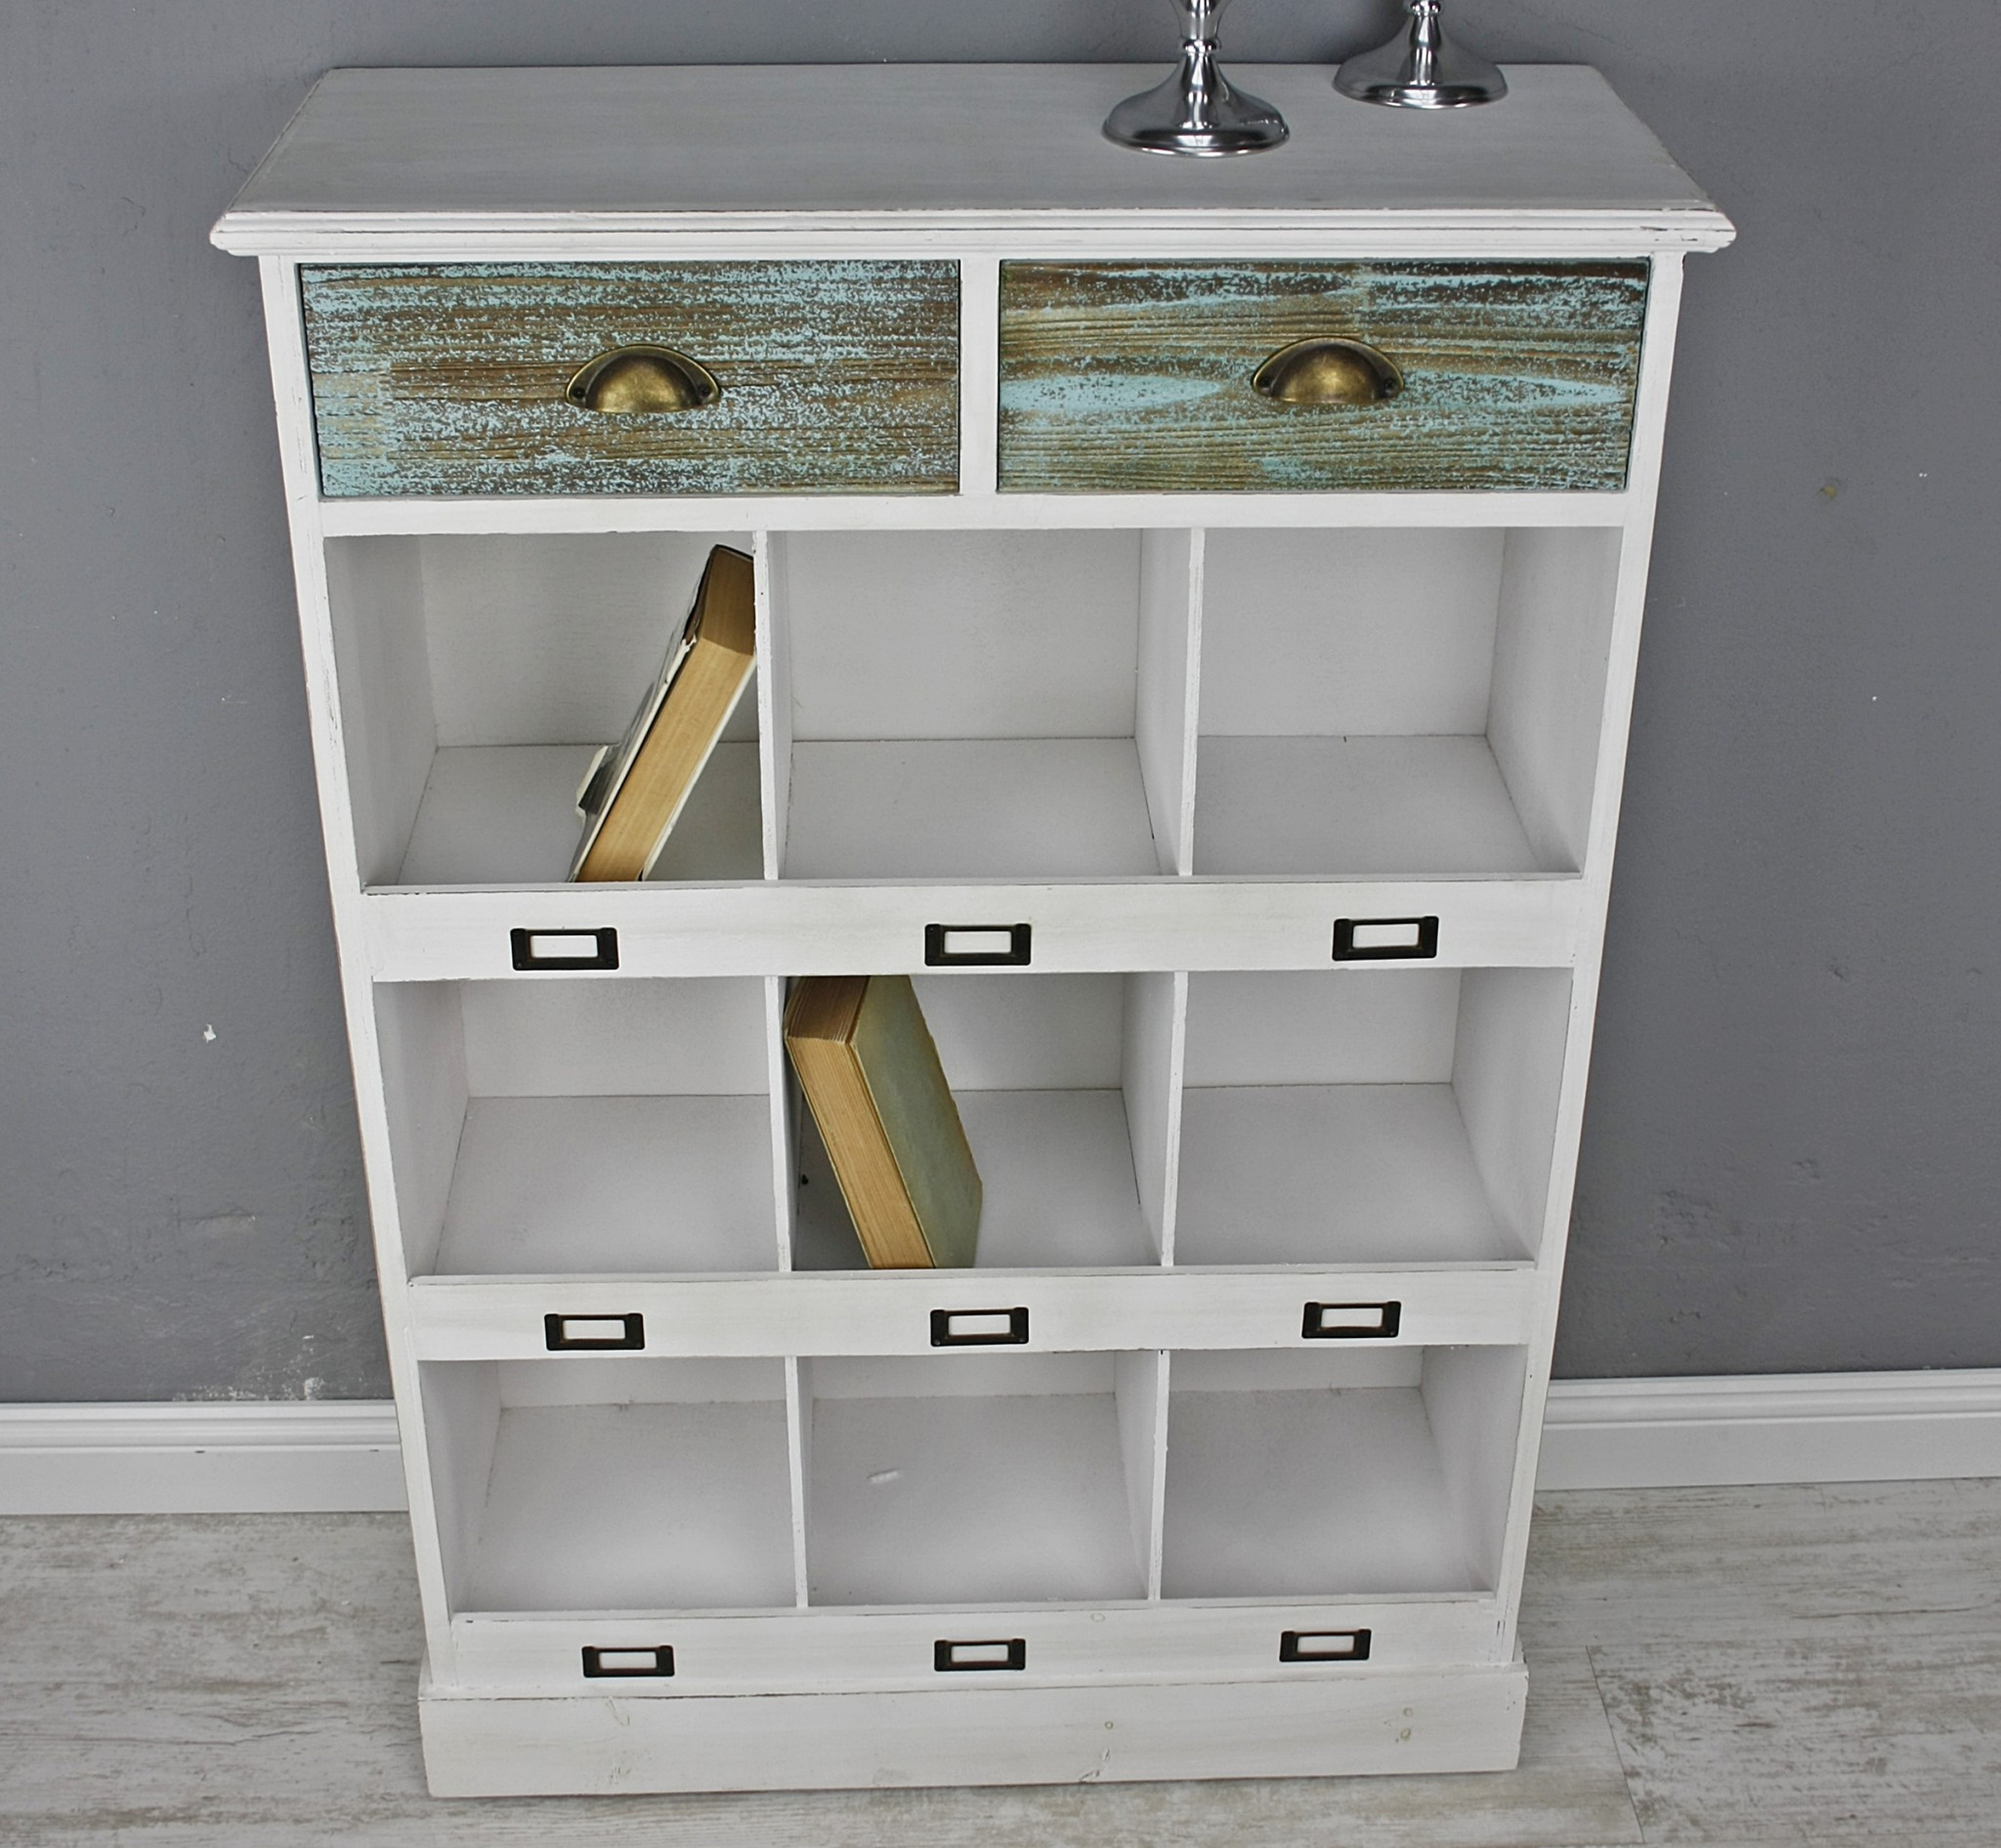 regal holz shabby chic | elbmöbel online shop